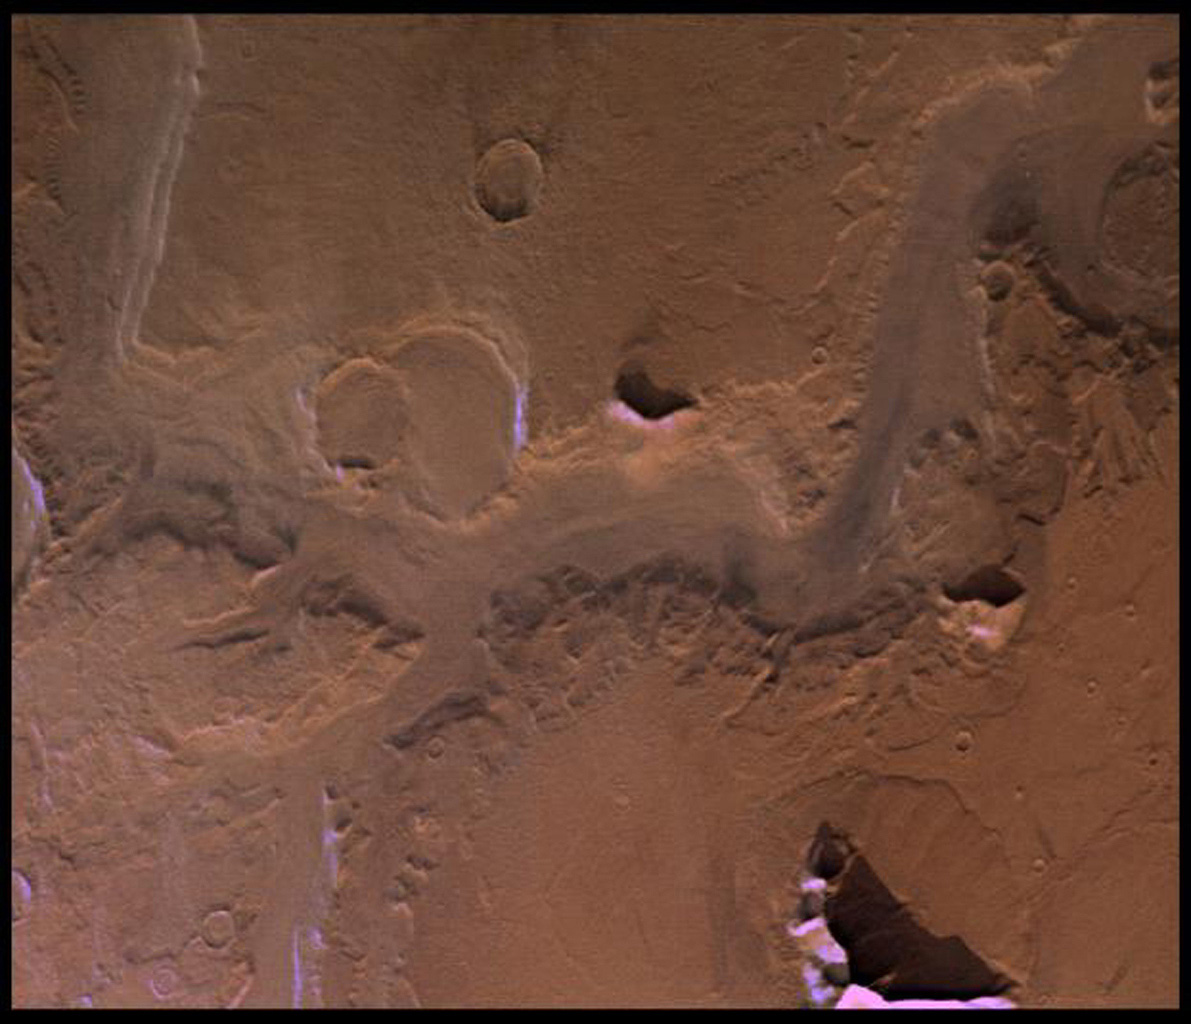 This image from NASA's Viking Orbiter 1 shows Reull Valles, a conspicuous southeast-trending fretted channel, dissects wall deposits of the large Hellas impact basin.